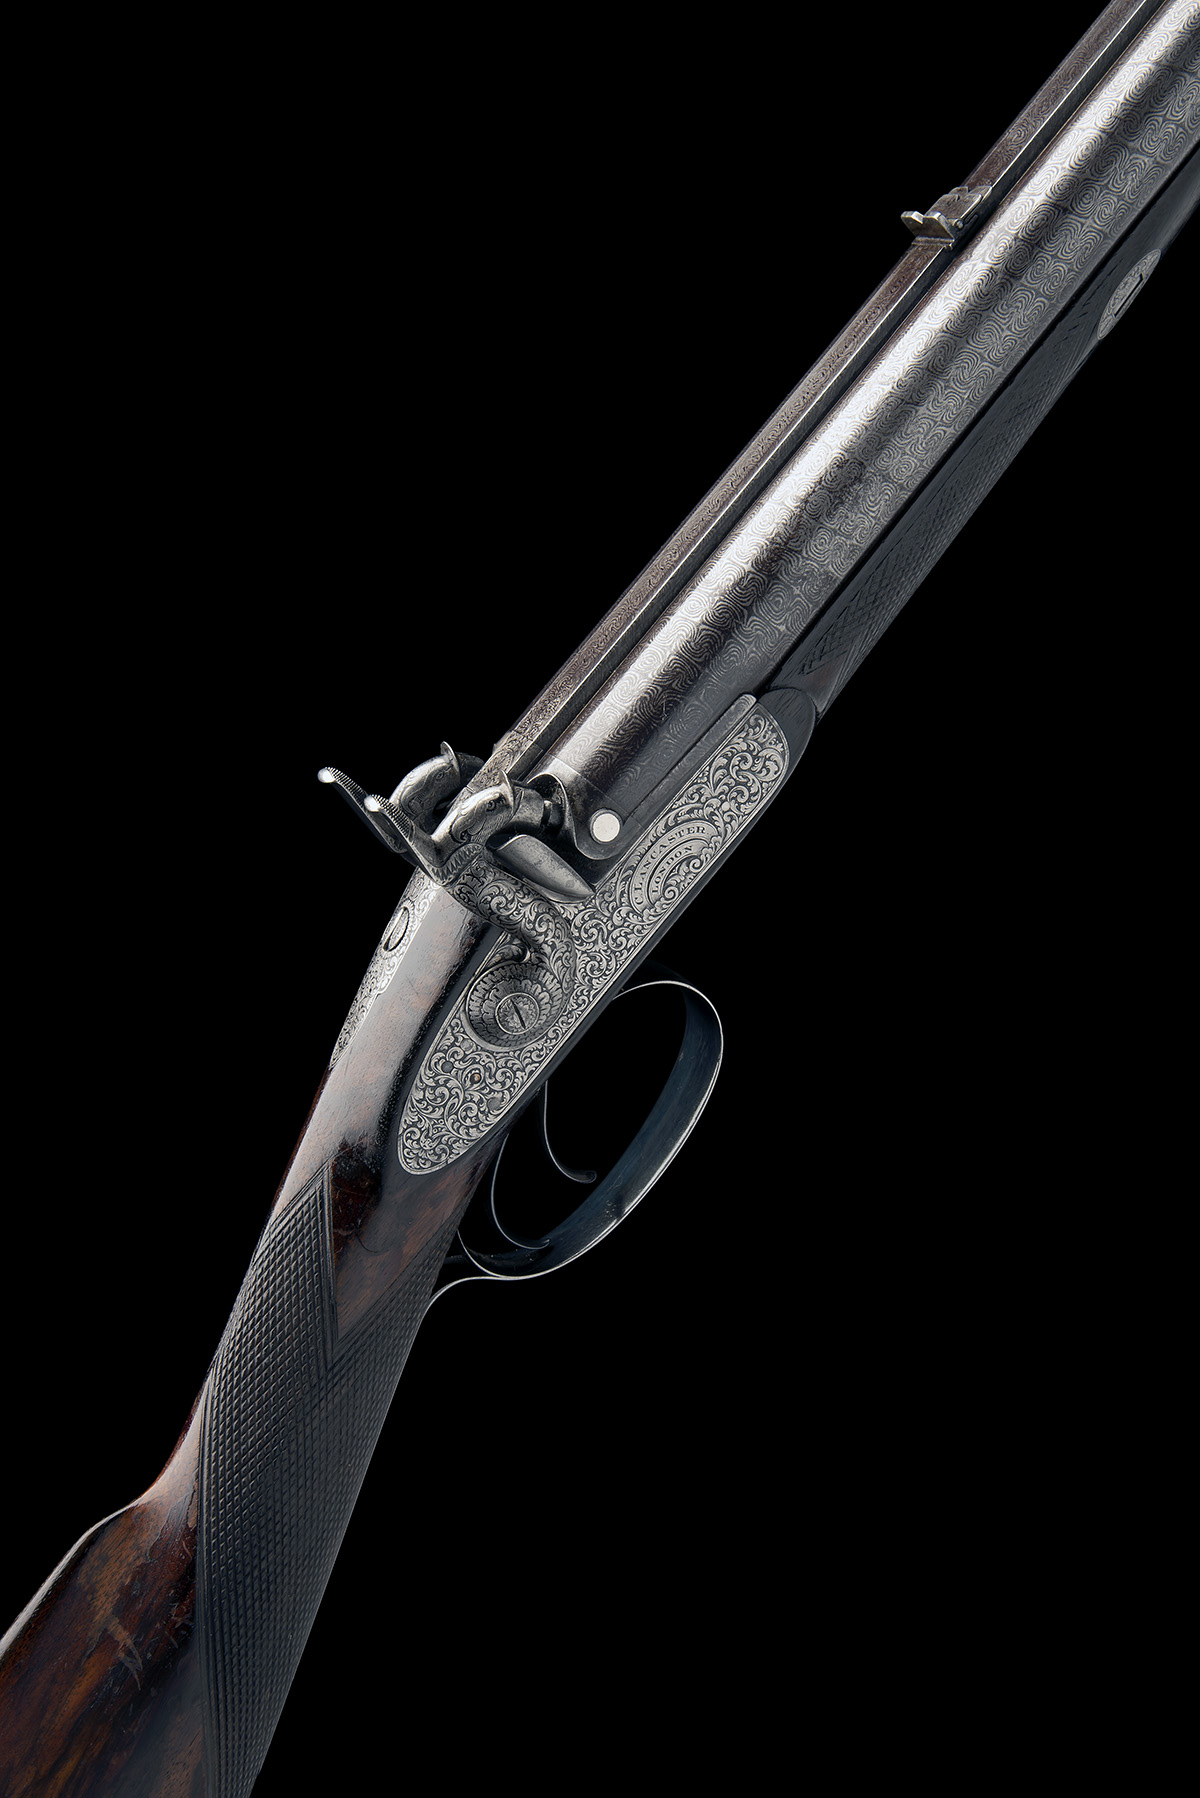 CHARLES LANCASTER, LONDON A CASED 12-BORE PERCUSSION DOUBLE-BARRELLED SPORTING-GUN, serial no. 2292,